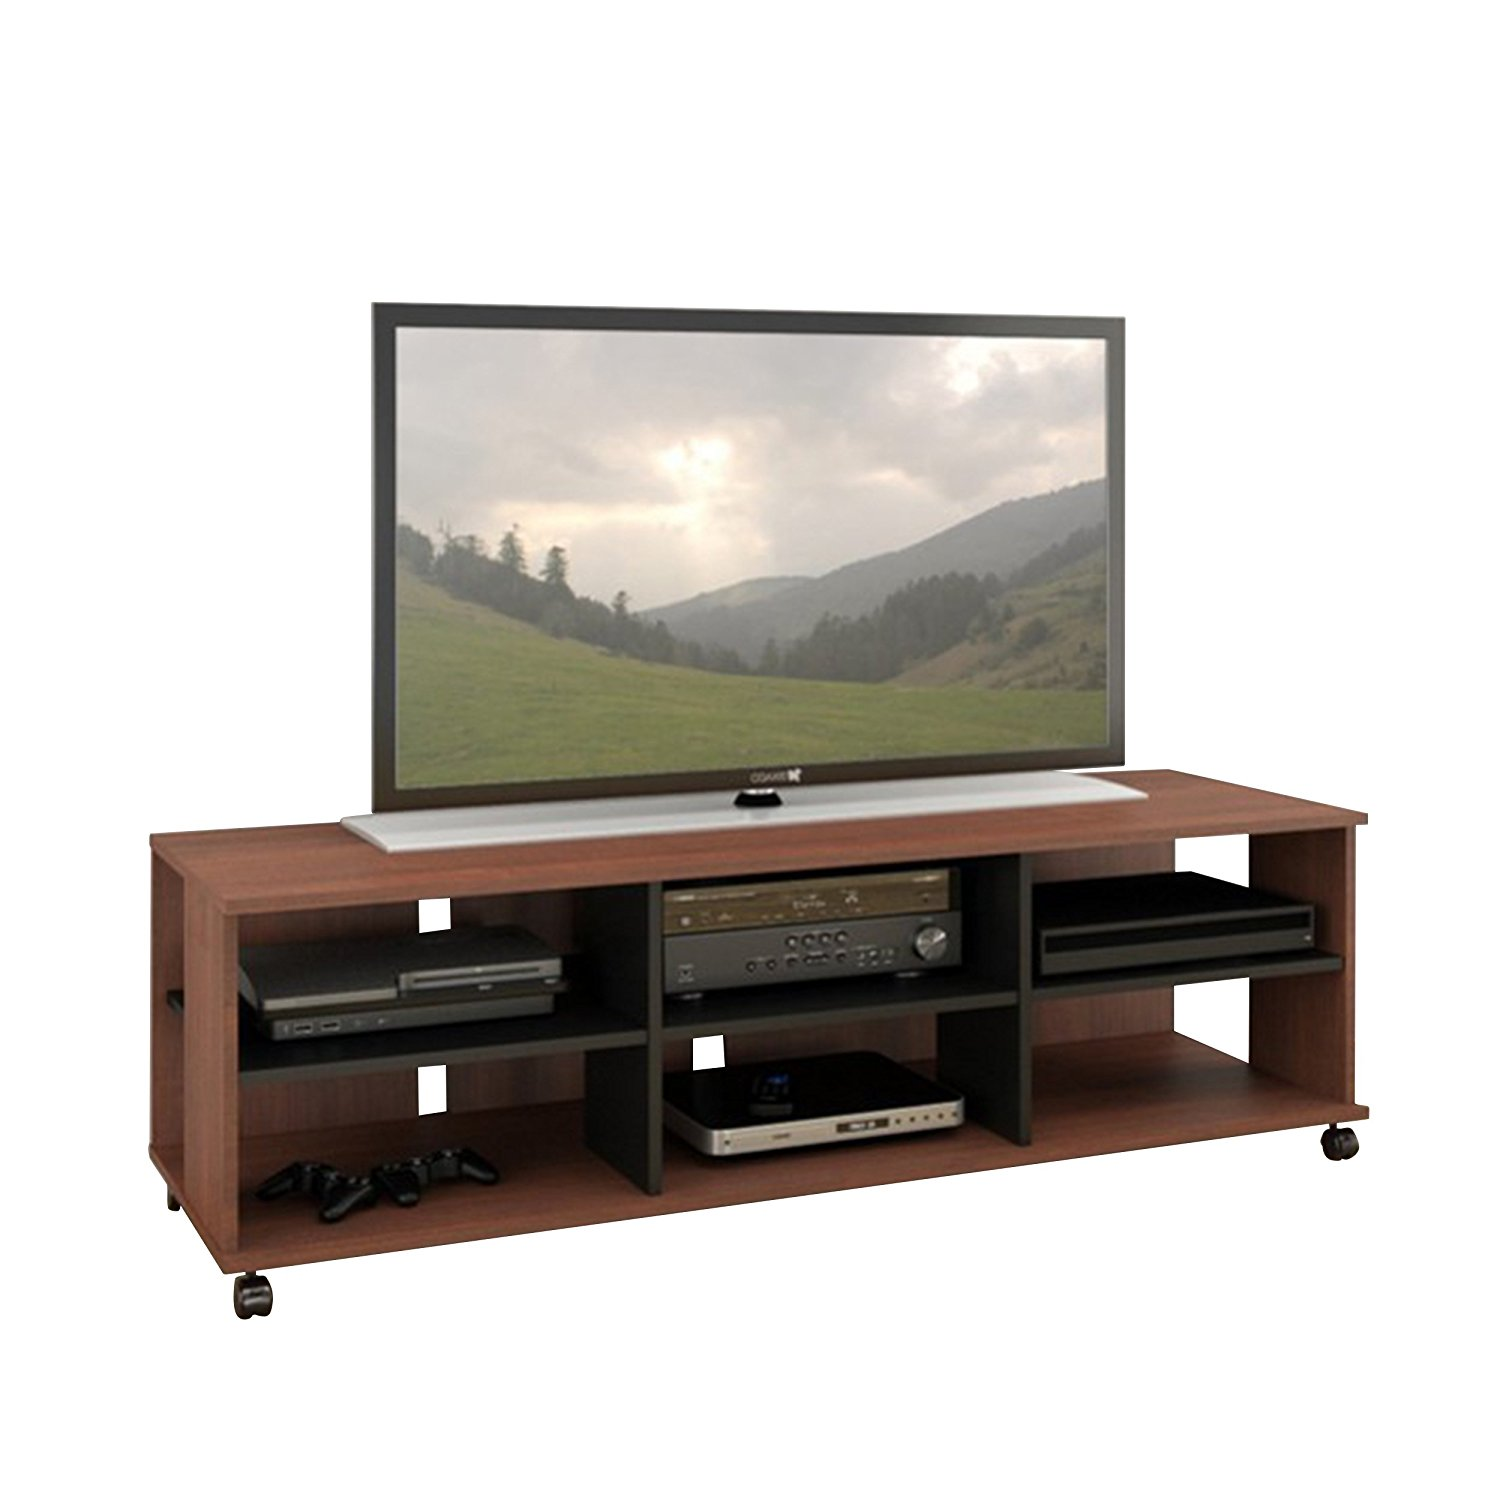 Cheap 60 Inch Tv Stand Black find 60 Inch Tv Stand Black deals on